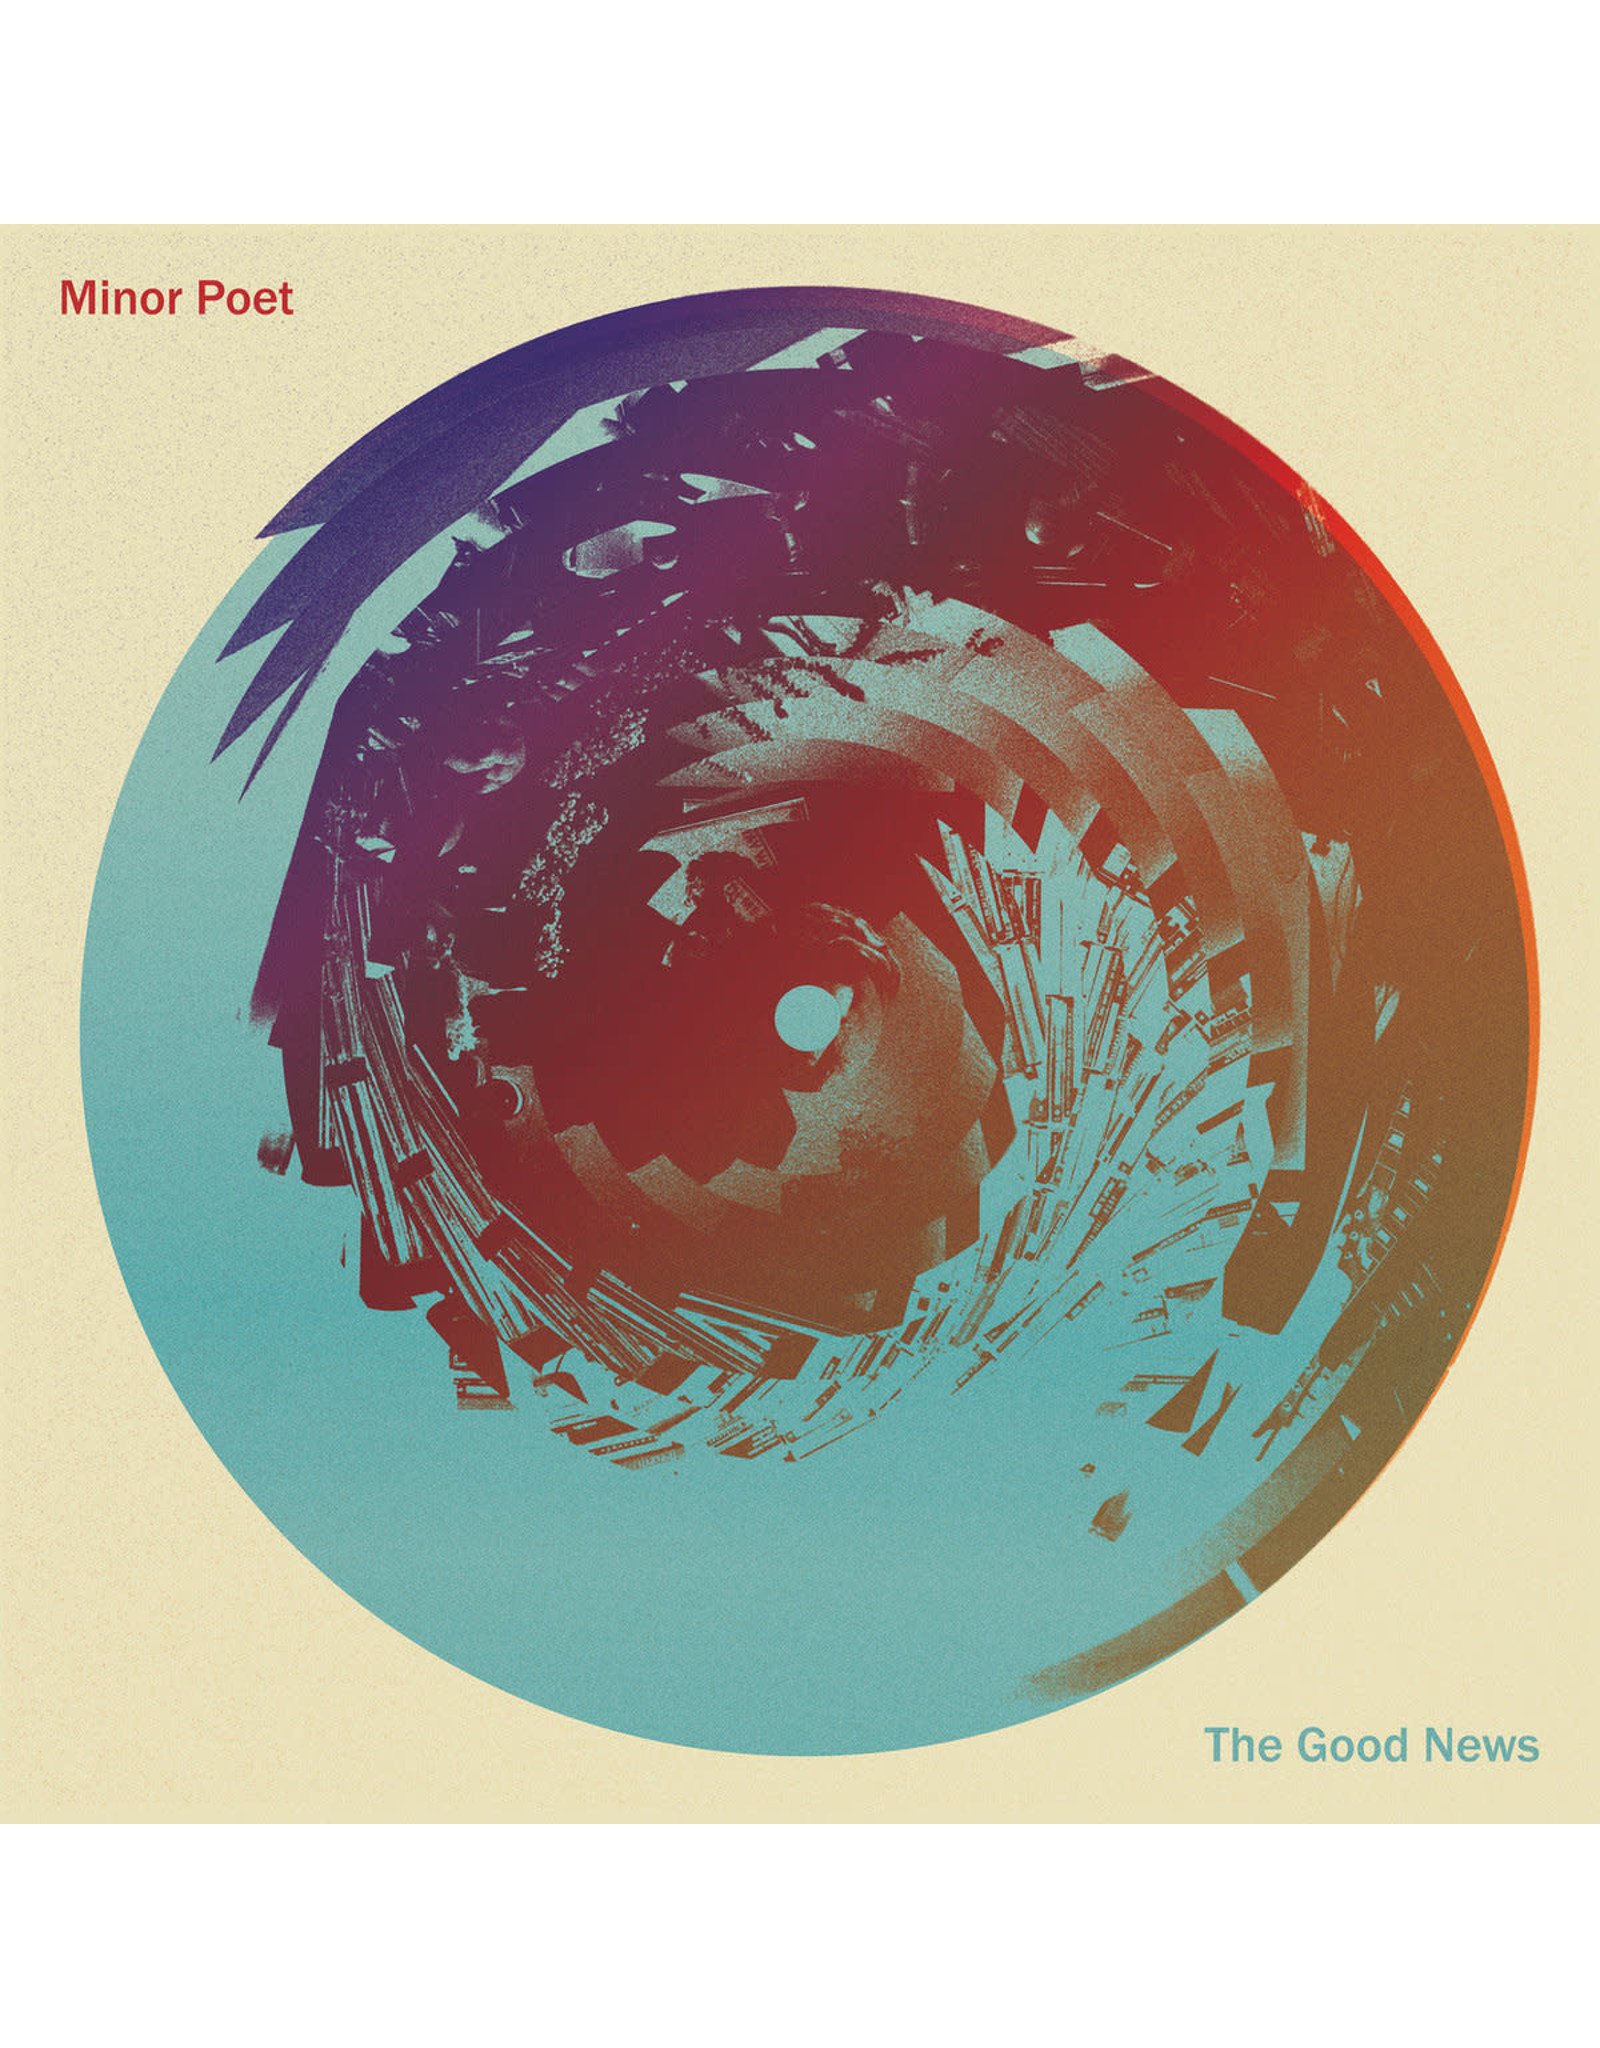 Minor Poet - The Good News LP (loser edition)